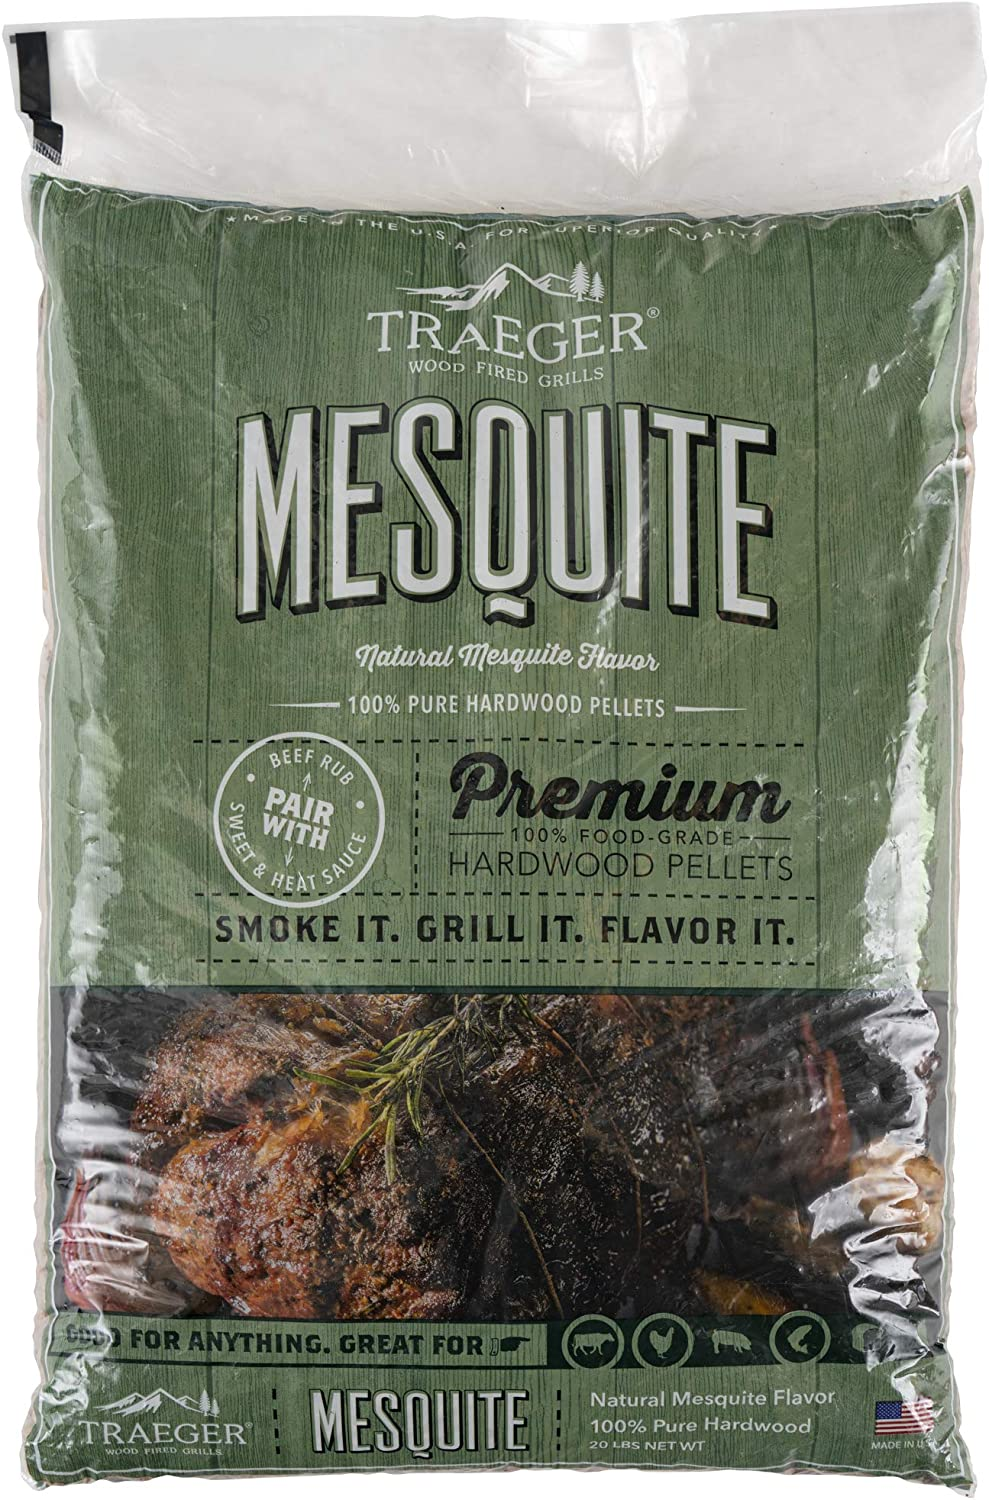 Traeger Grills PEL305 Mesquite 100% All-Natural Hardwood Pellets Grill, Smoke, Bake, Roast, Braise and BBQ, 20 lb. Bag : Outdoor Grilling Pellets : Garden & Outdoor